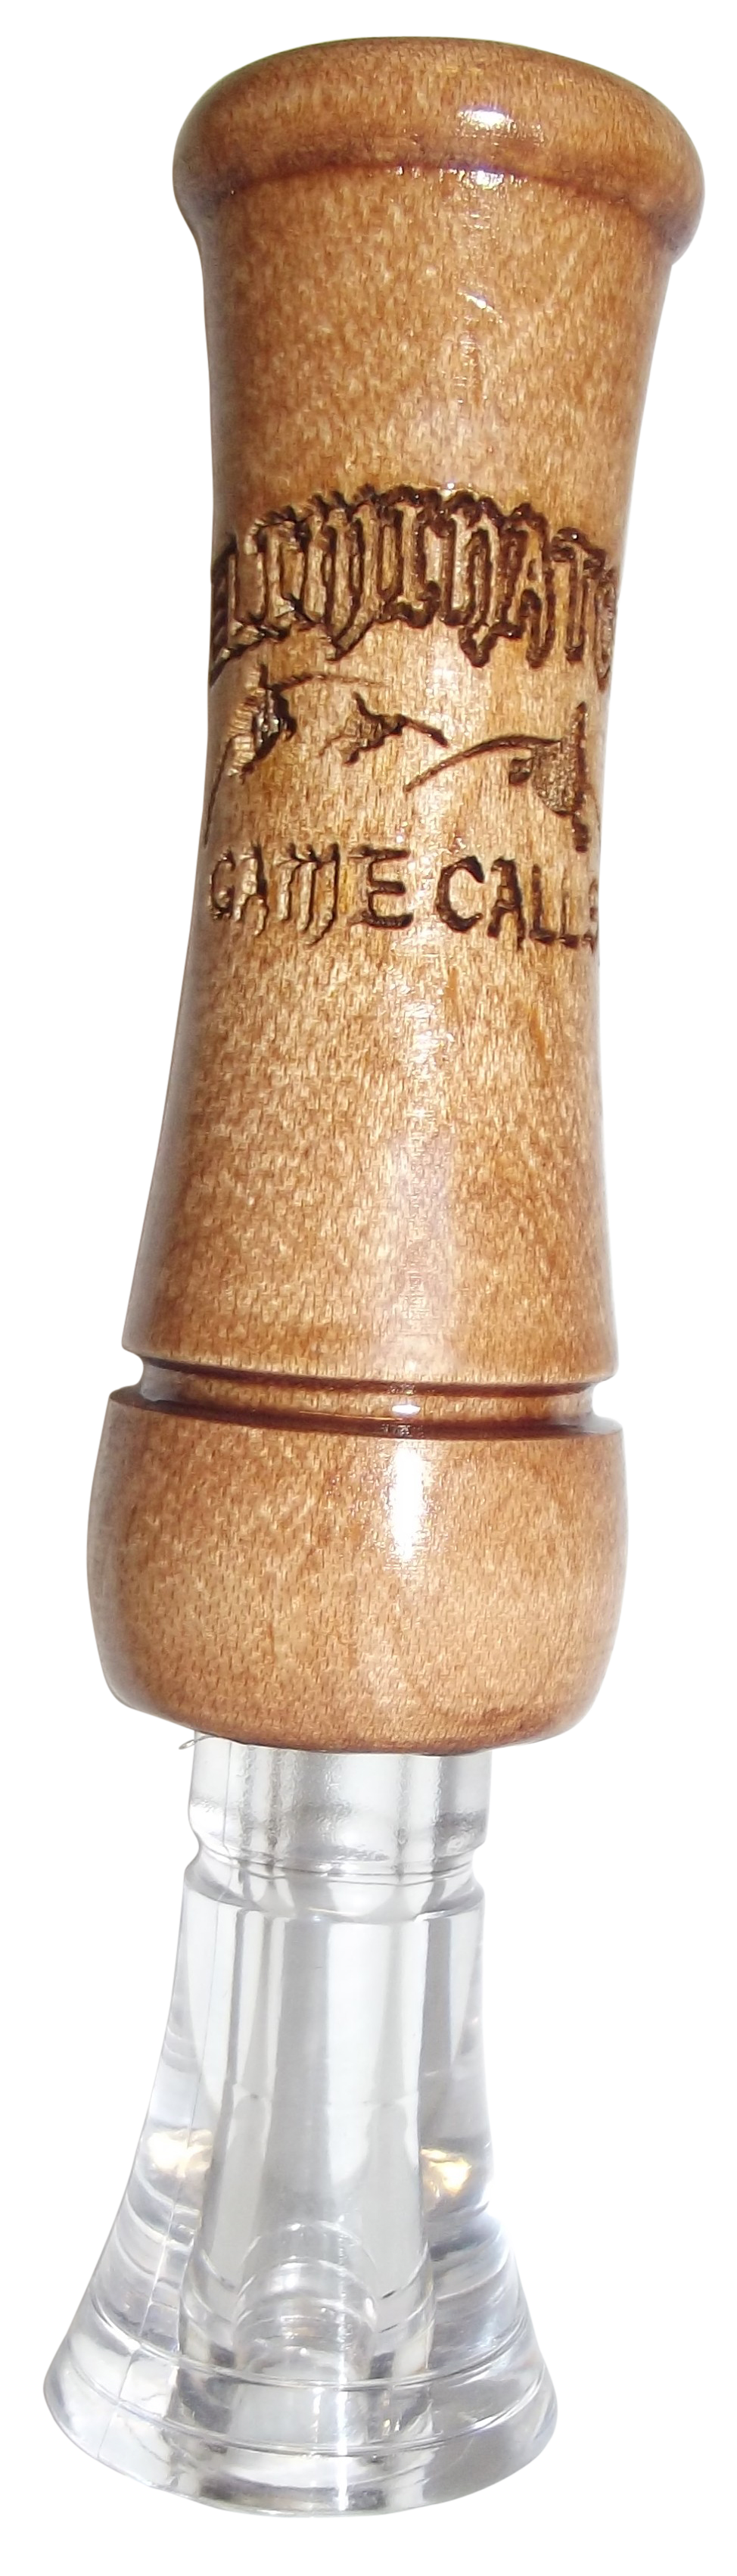 Eliminator Calls Green Head Assassin Classic II Duck Call Wood